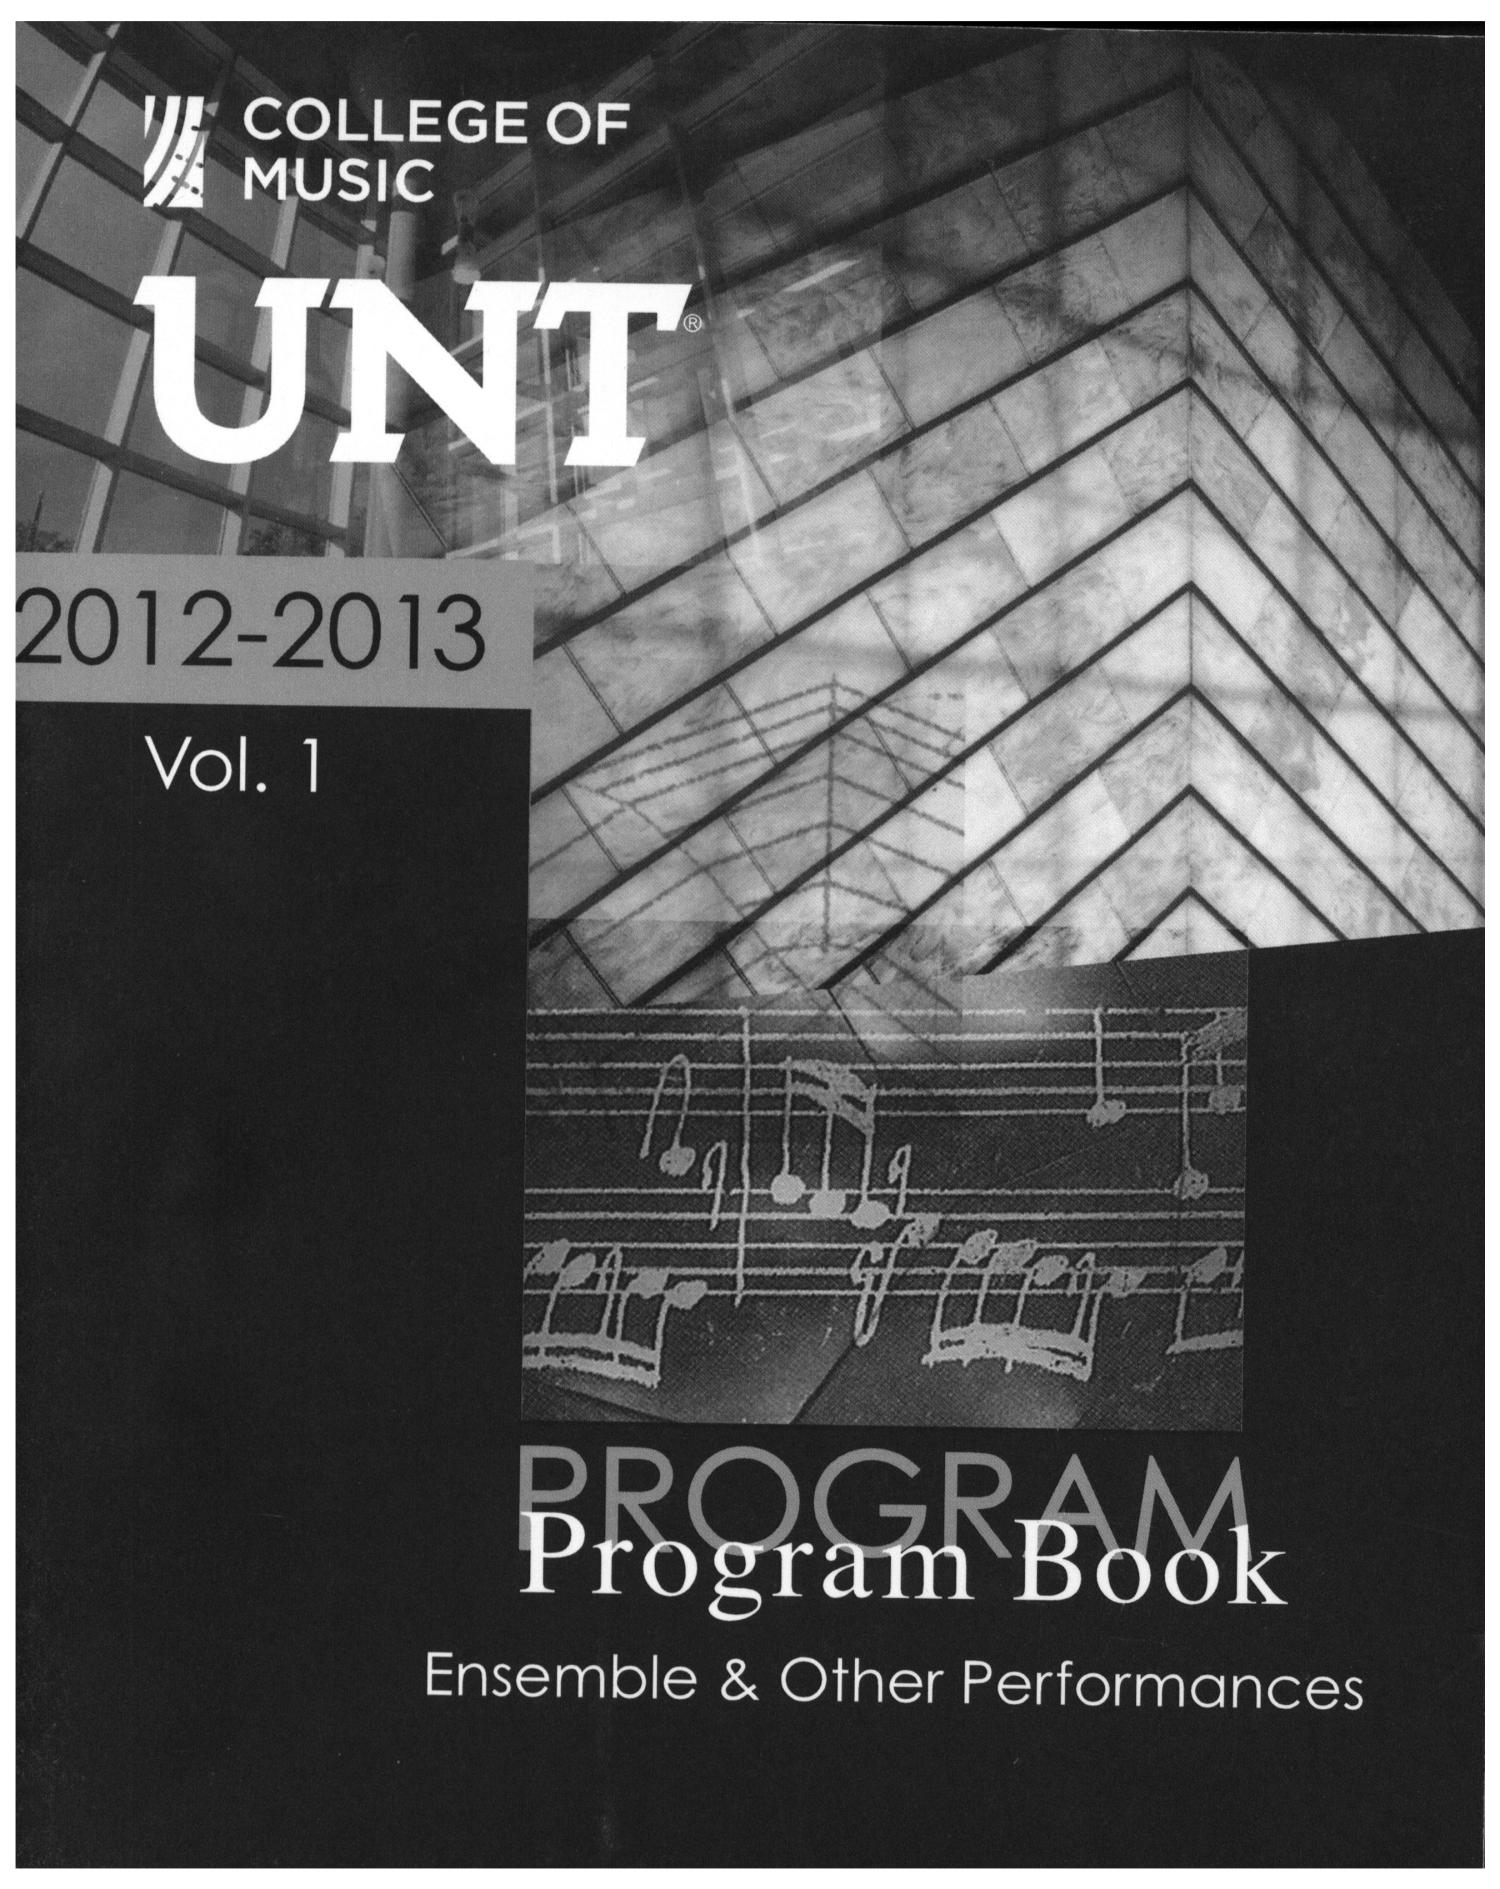 College of Music Program Book 2012-2013: Ensemble & Other Performances, Volume 1                                                                                                      Front Cover